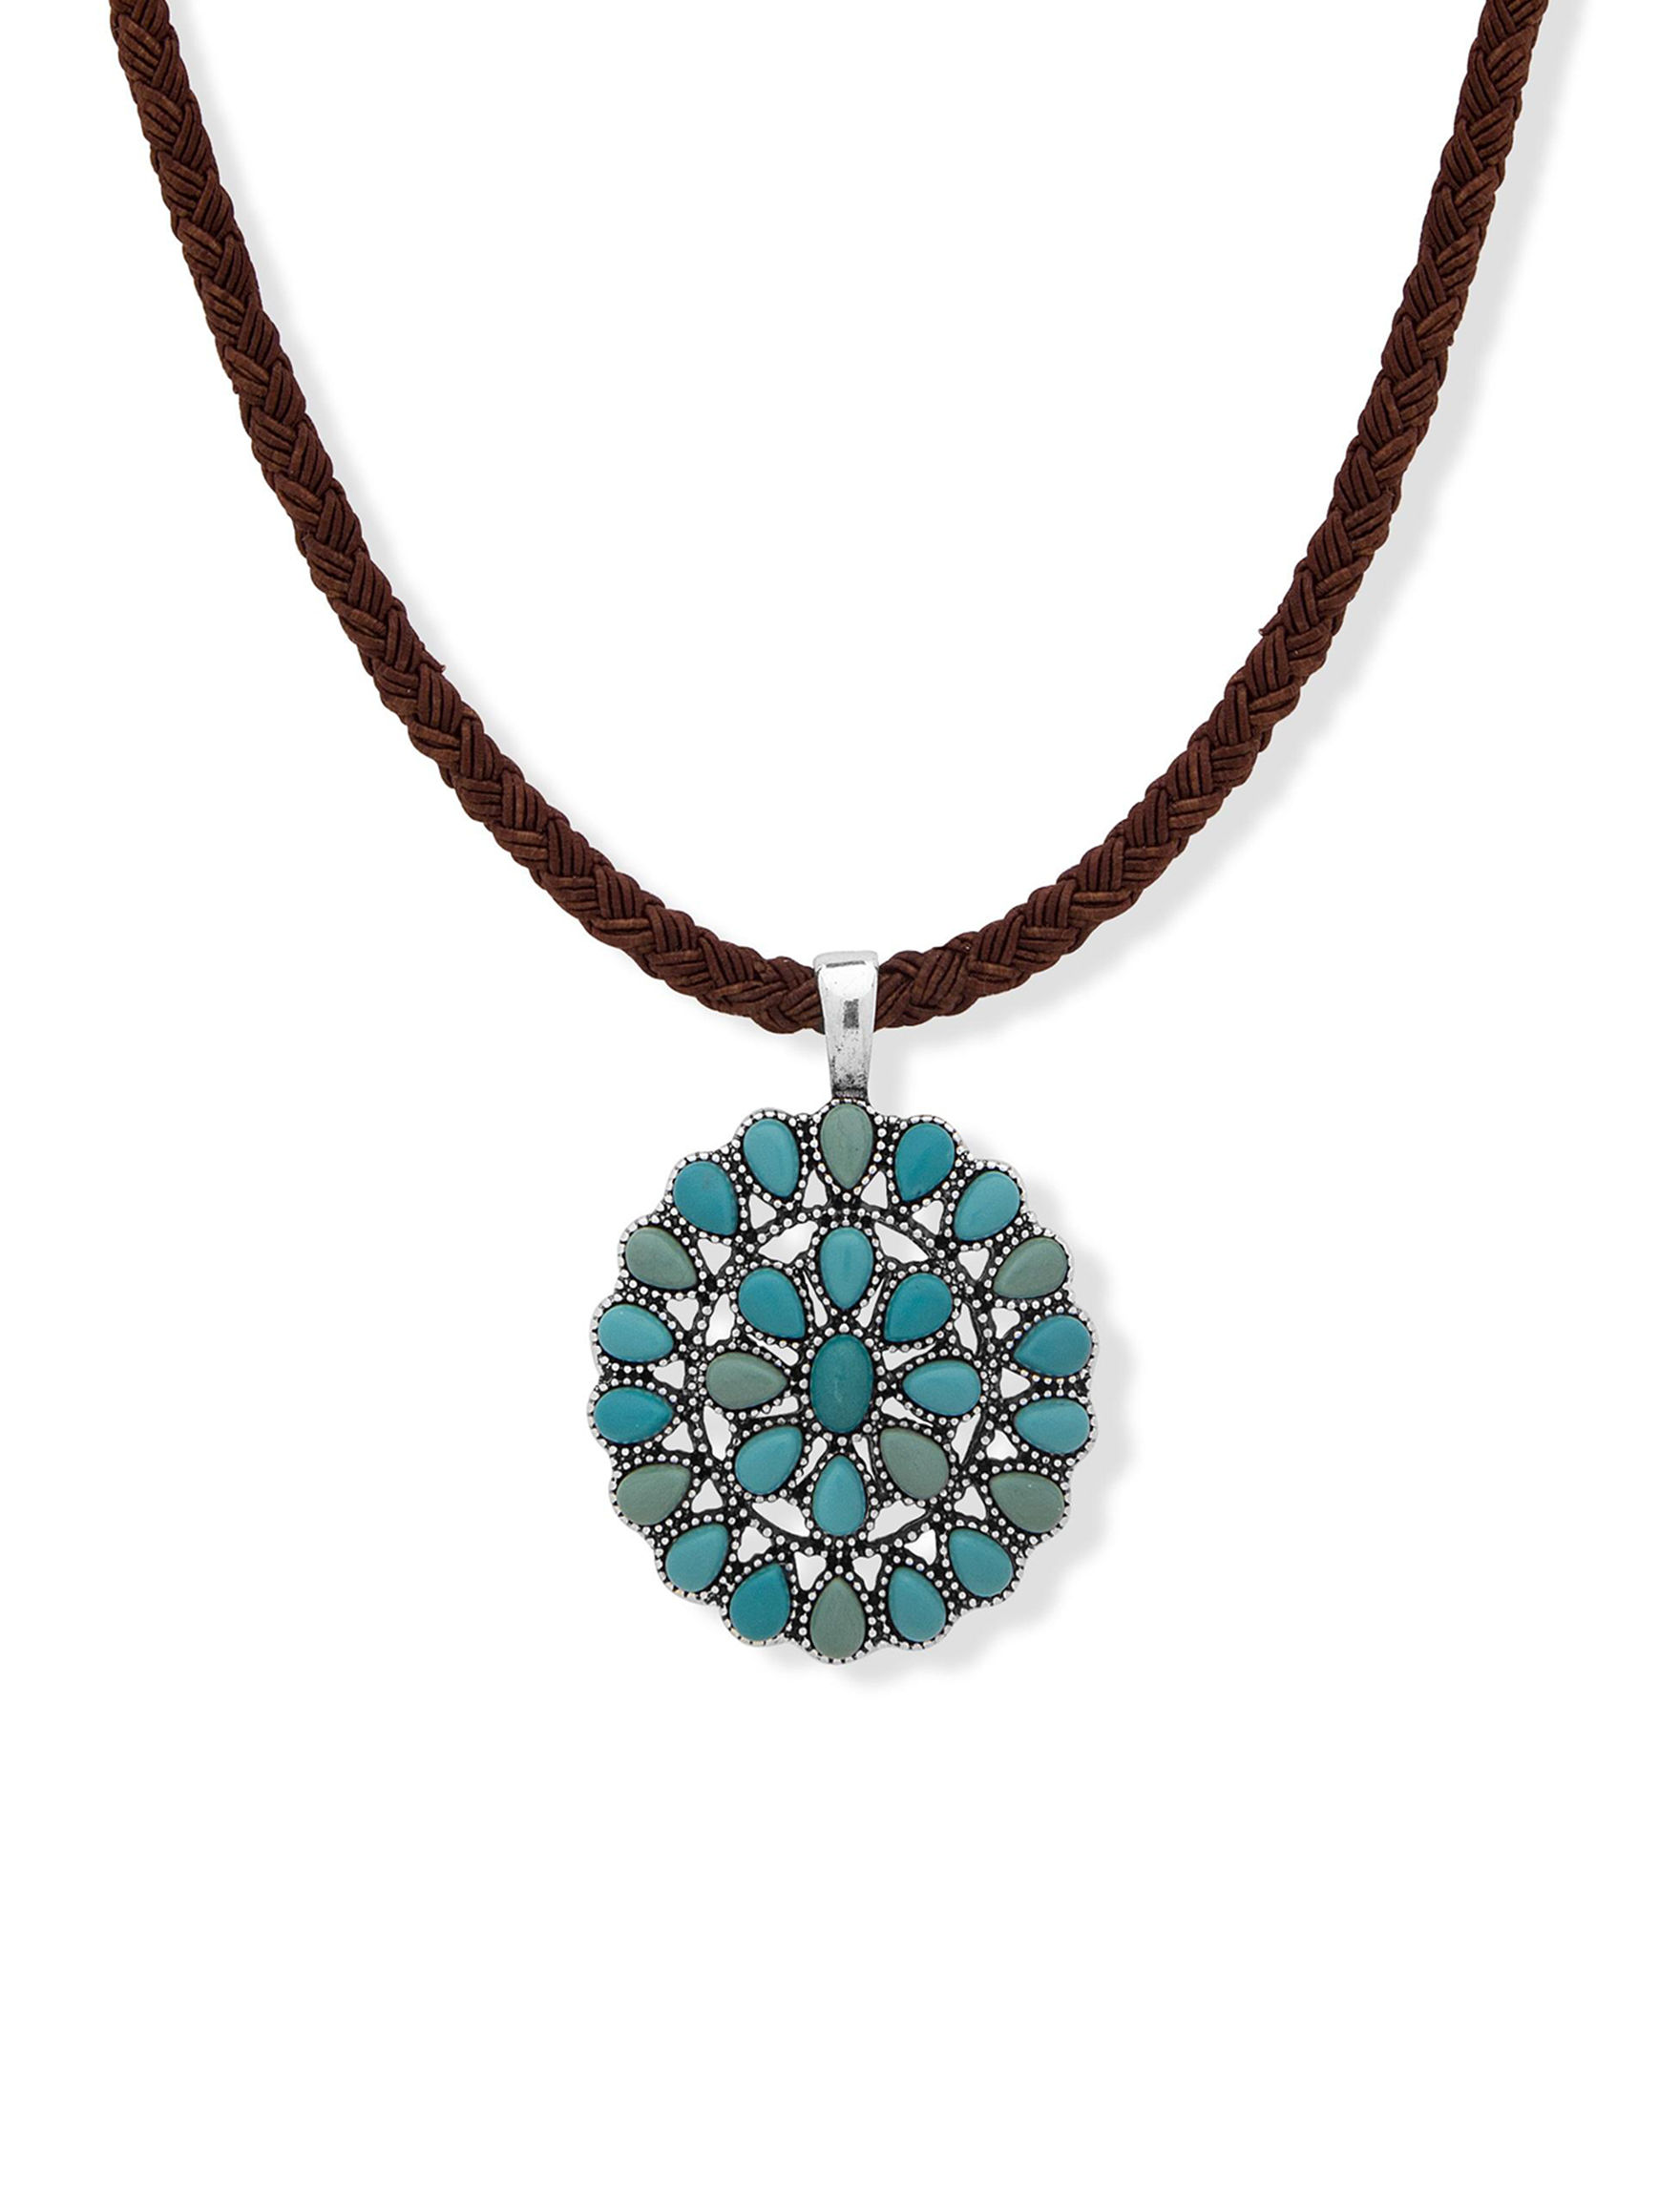 Chaps Turquoise Necklaces & Pendants Fashion Jewelry